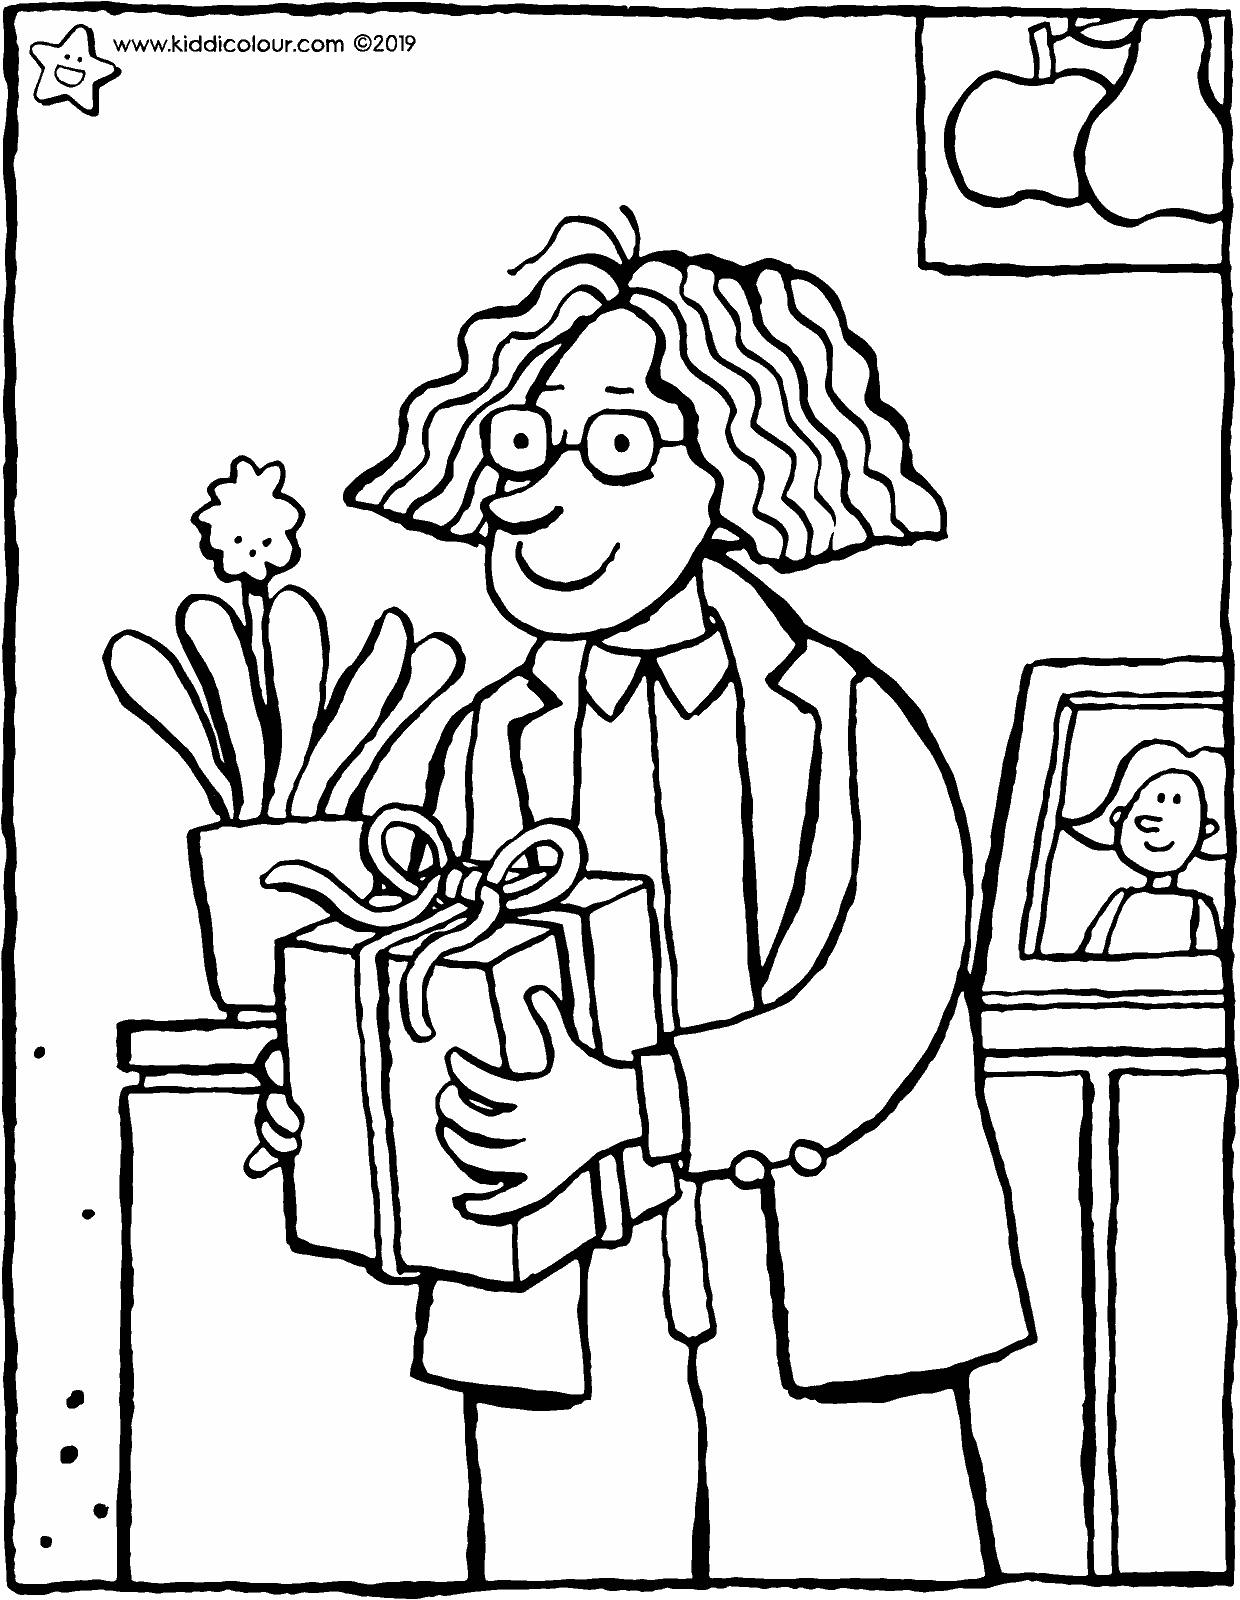 Uncle Paul has a present for your birthday colouring page drawing picture 01V